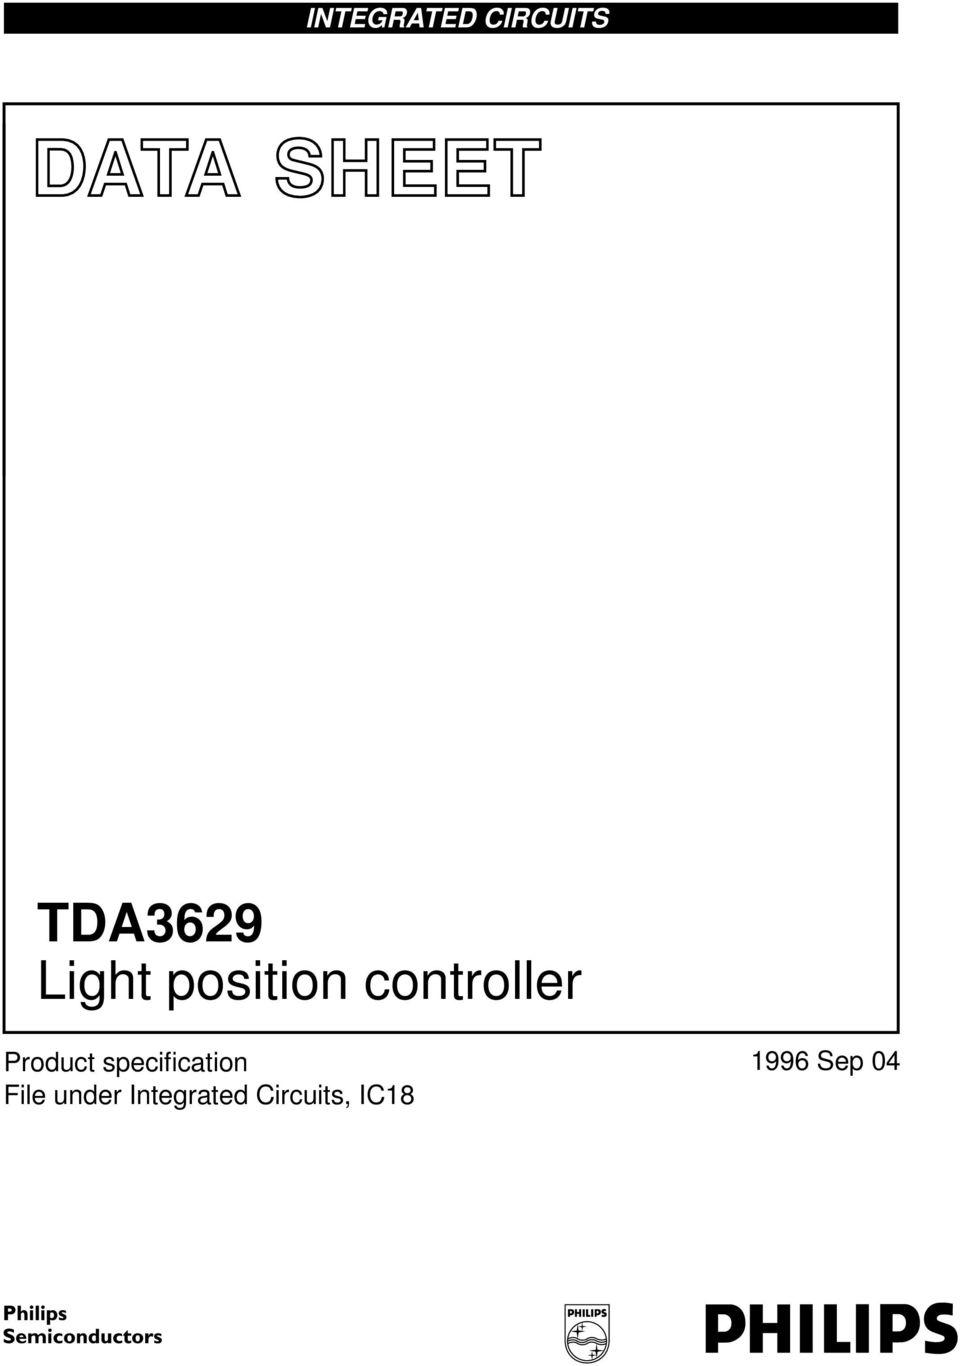 Integrated Circuits Data Sheet Tda3629 Light Position Controller Metal Sensor Detector Circuit Schematic With Tda2822 The Under